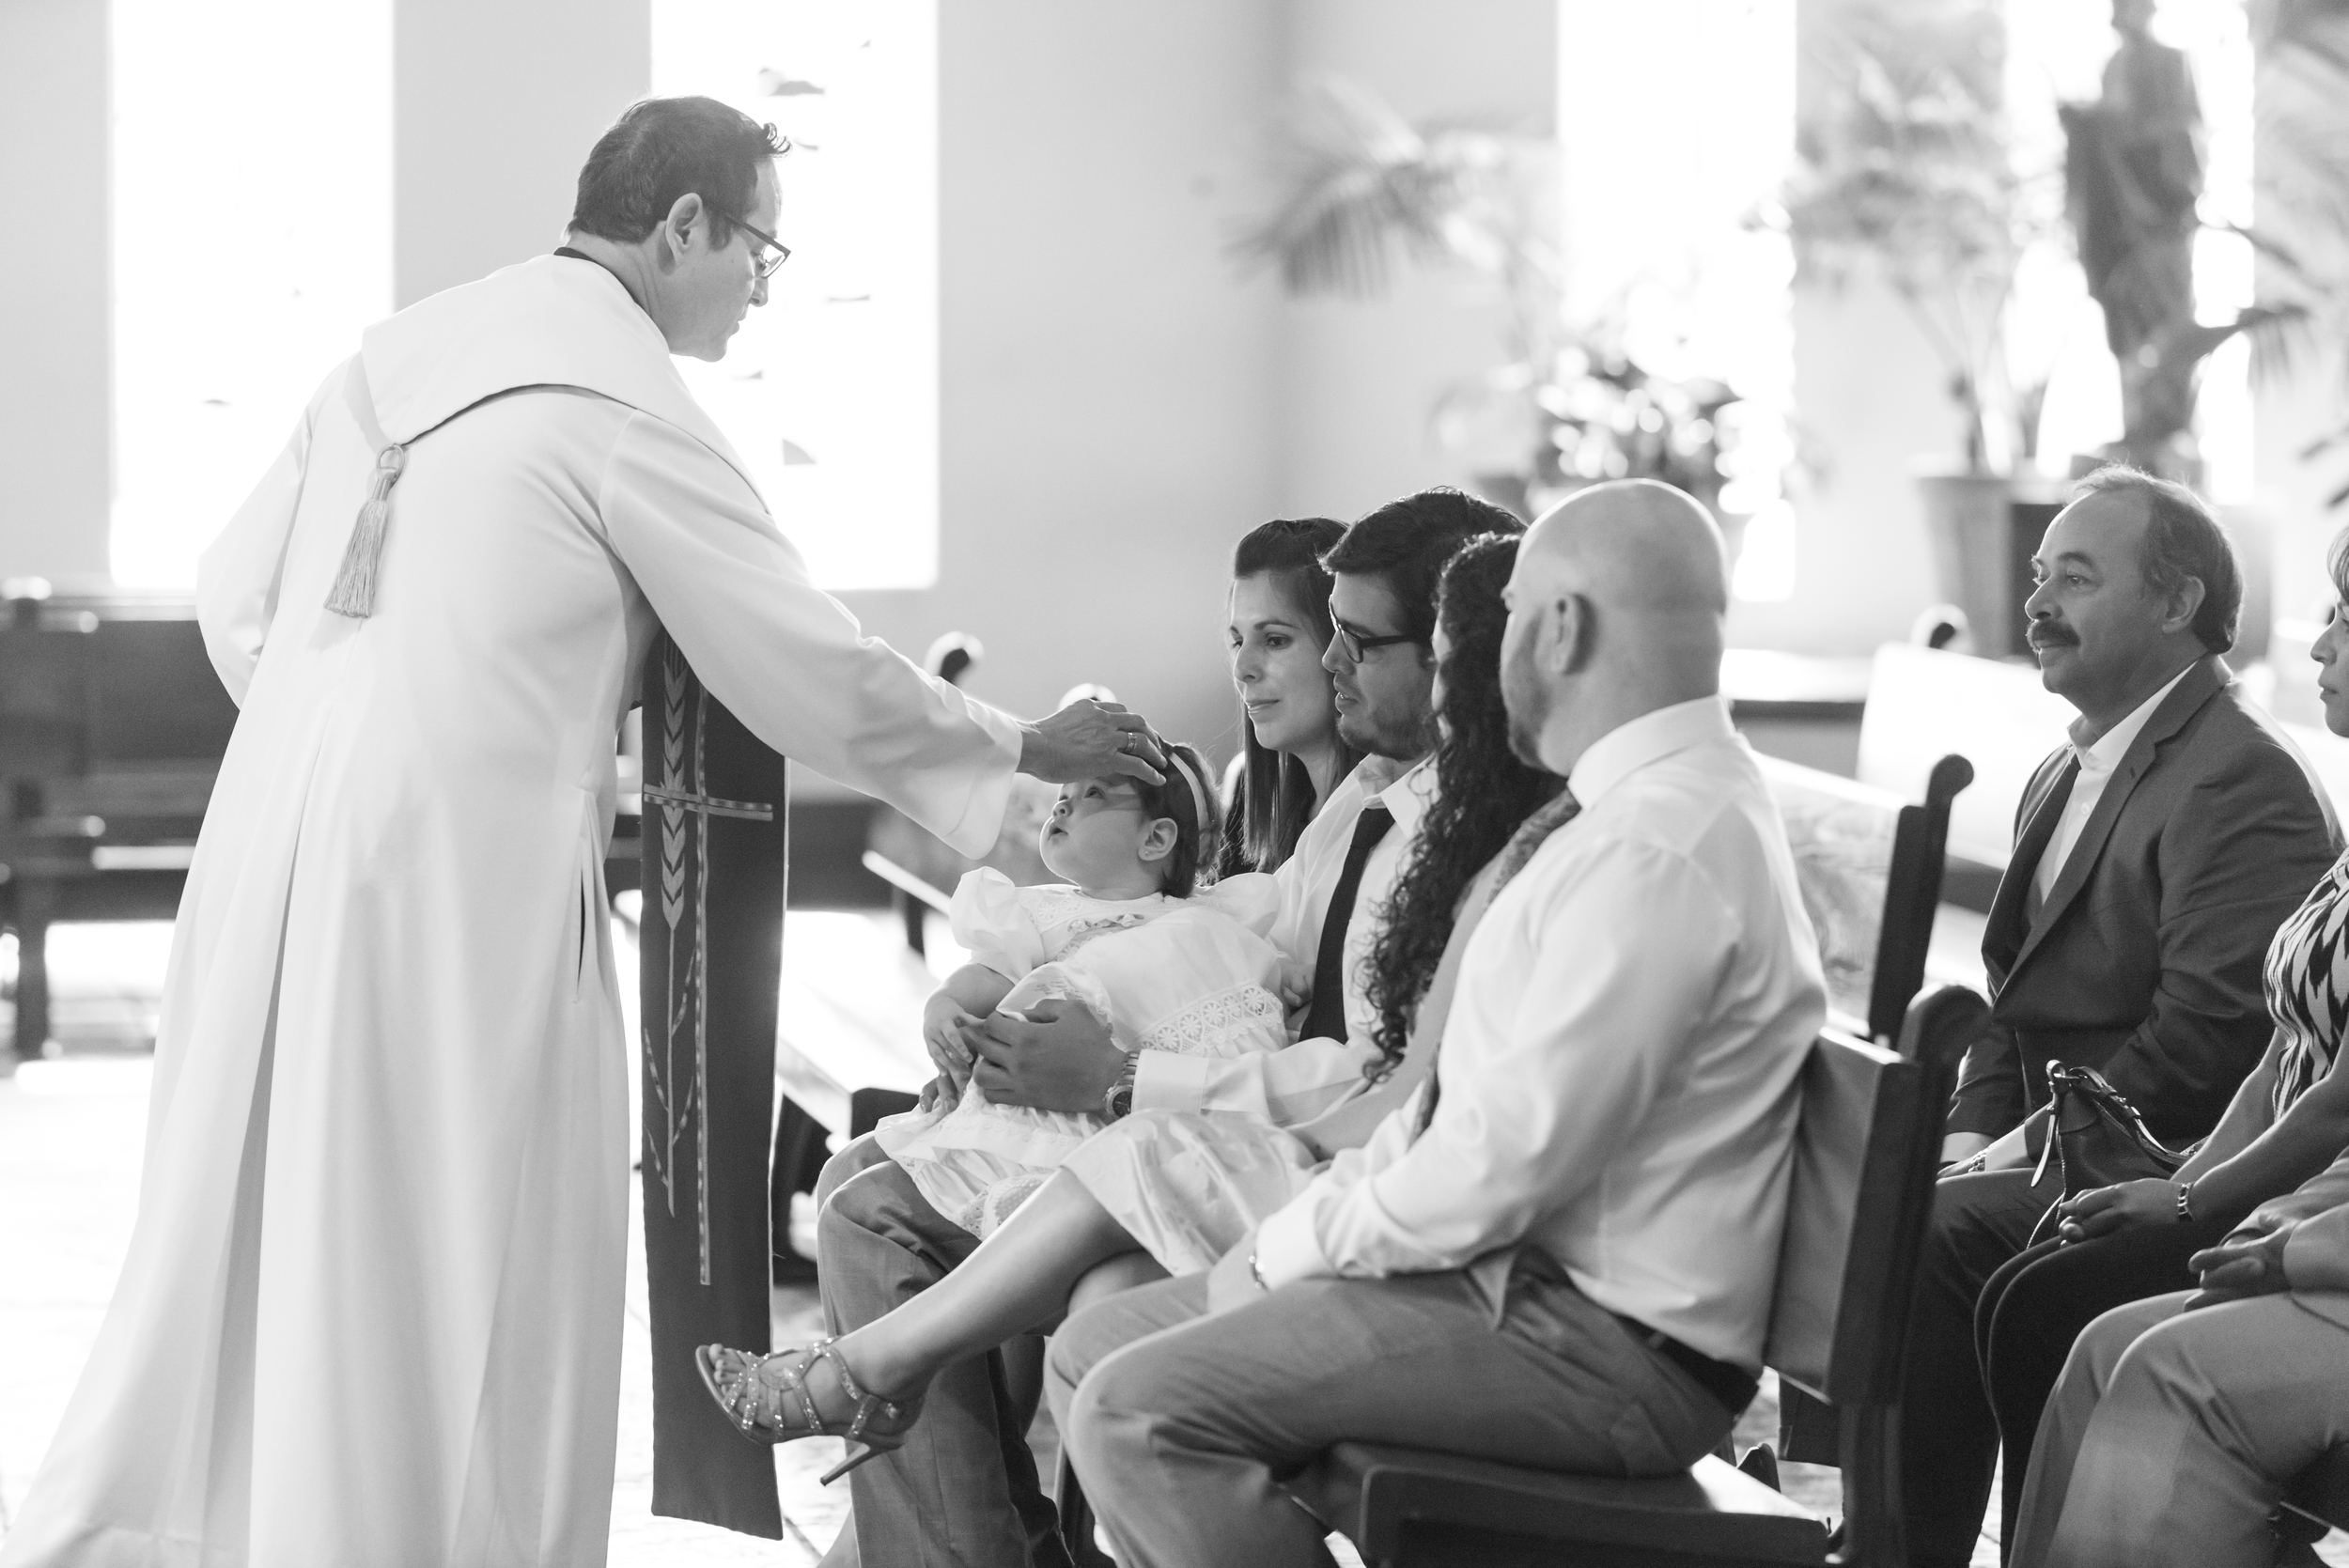 Yvette Gasca photographed my Little Girl's Baptism. The photos are outstanding. I will cherish them forever. Thank you Yvette! I will definitely use her again.    Jackie R.